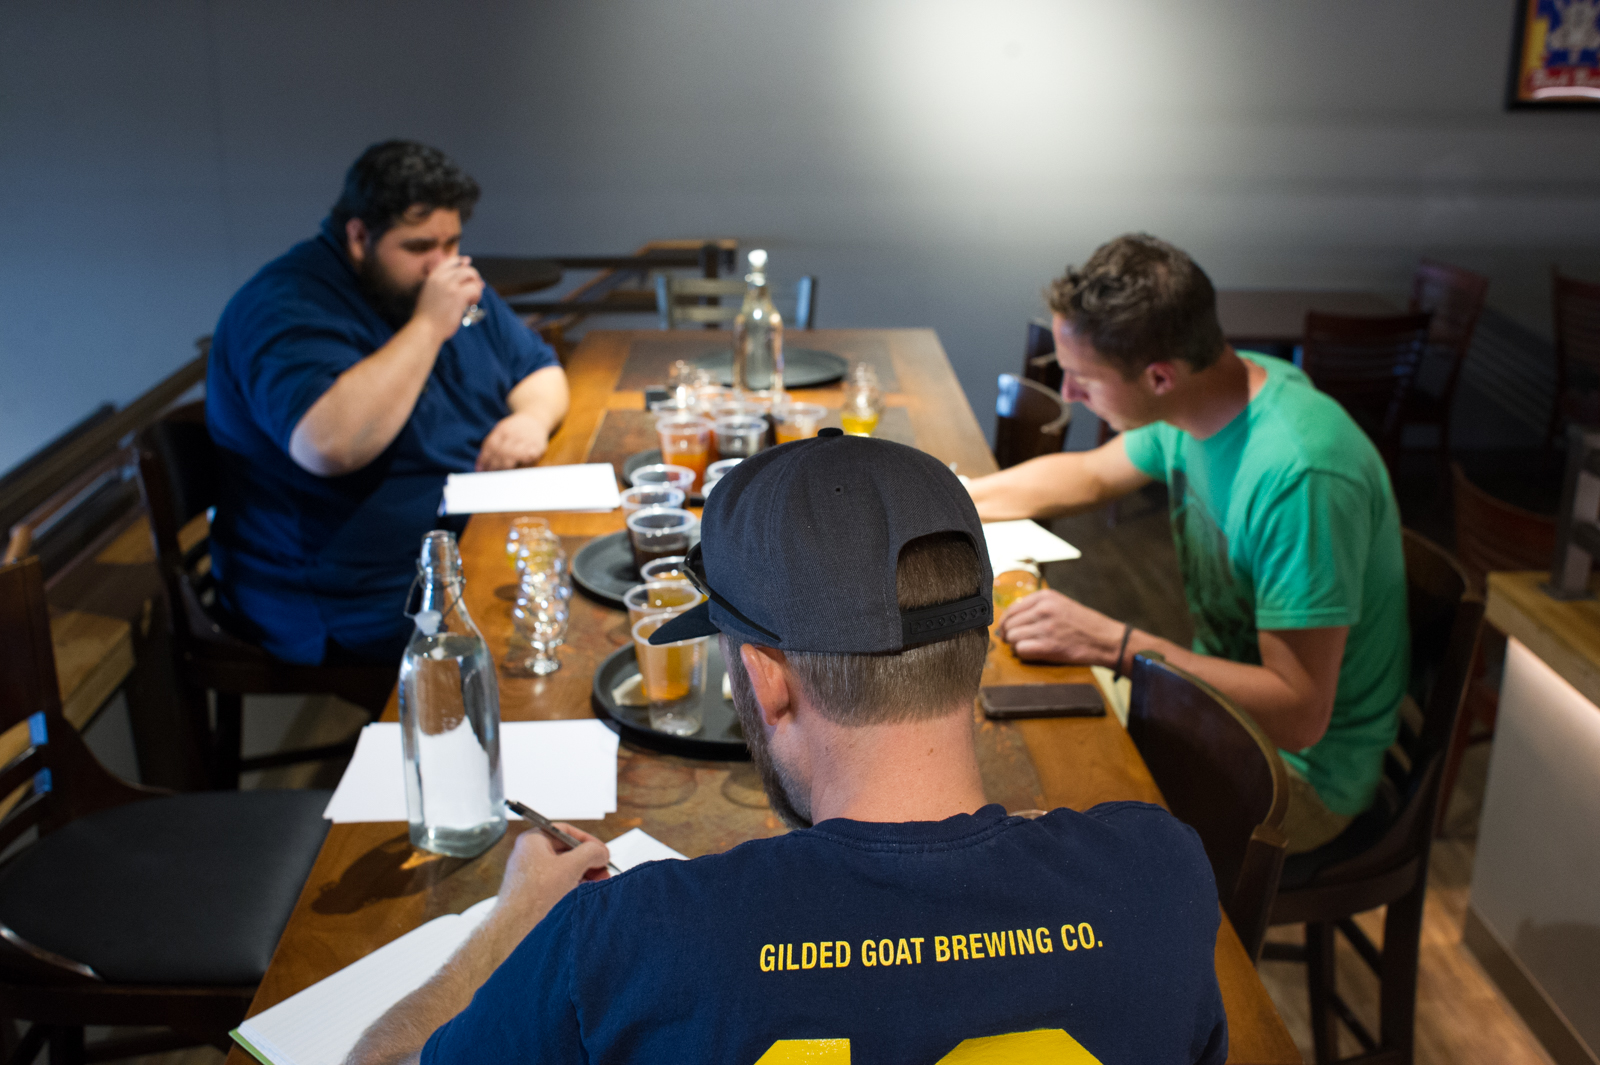 Brewmaster Charlie Hoxmeier leads the Gilded Goat team through tastings of our barrel aged beers - each at different maturation points.